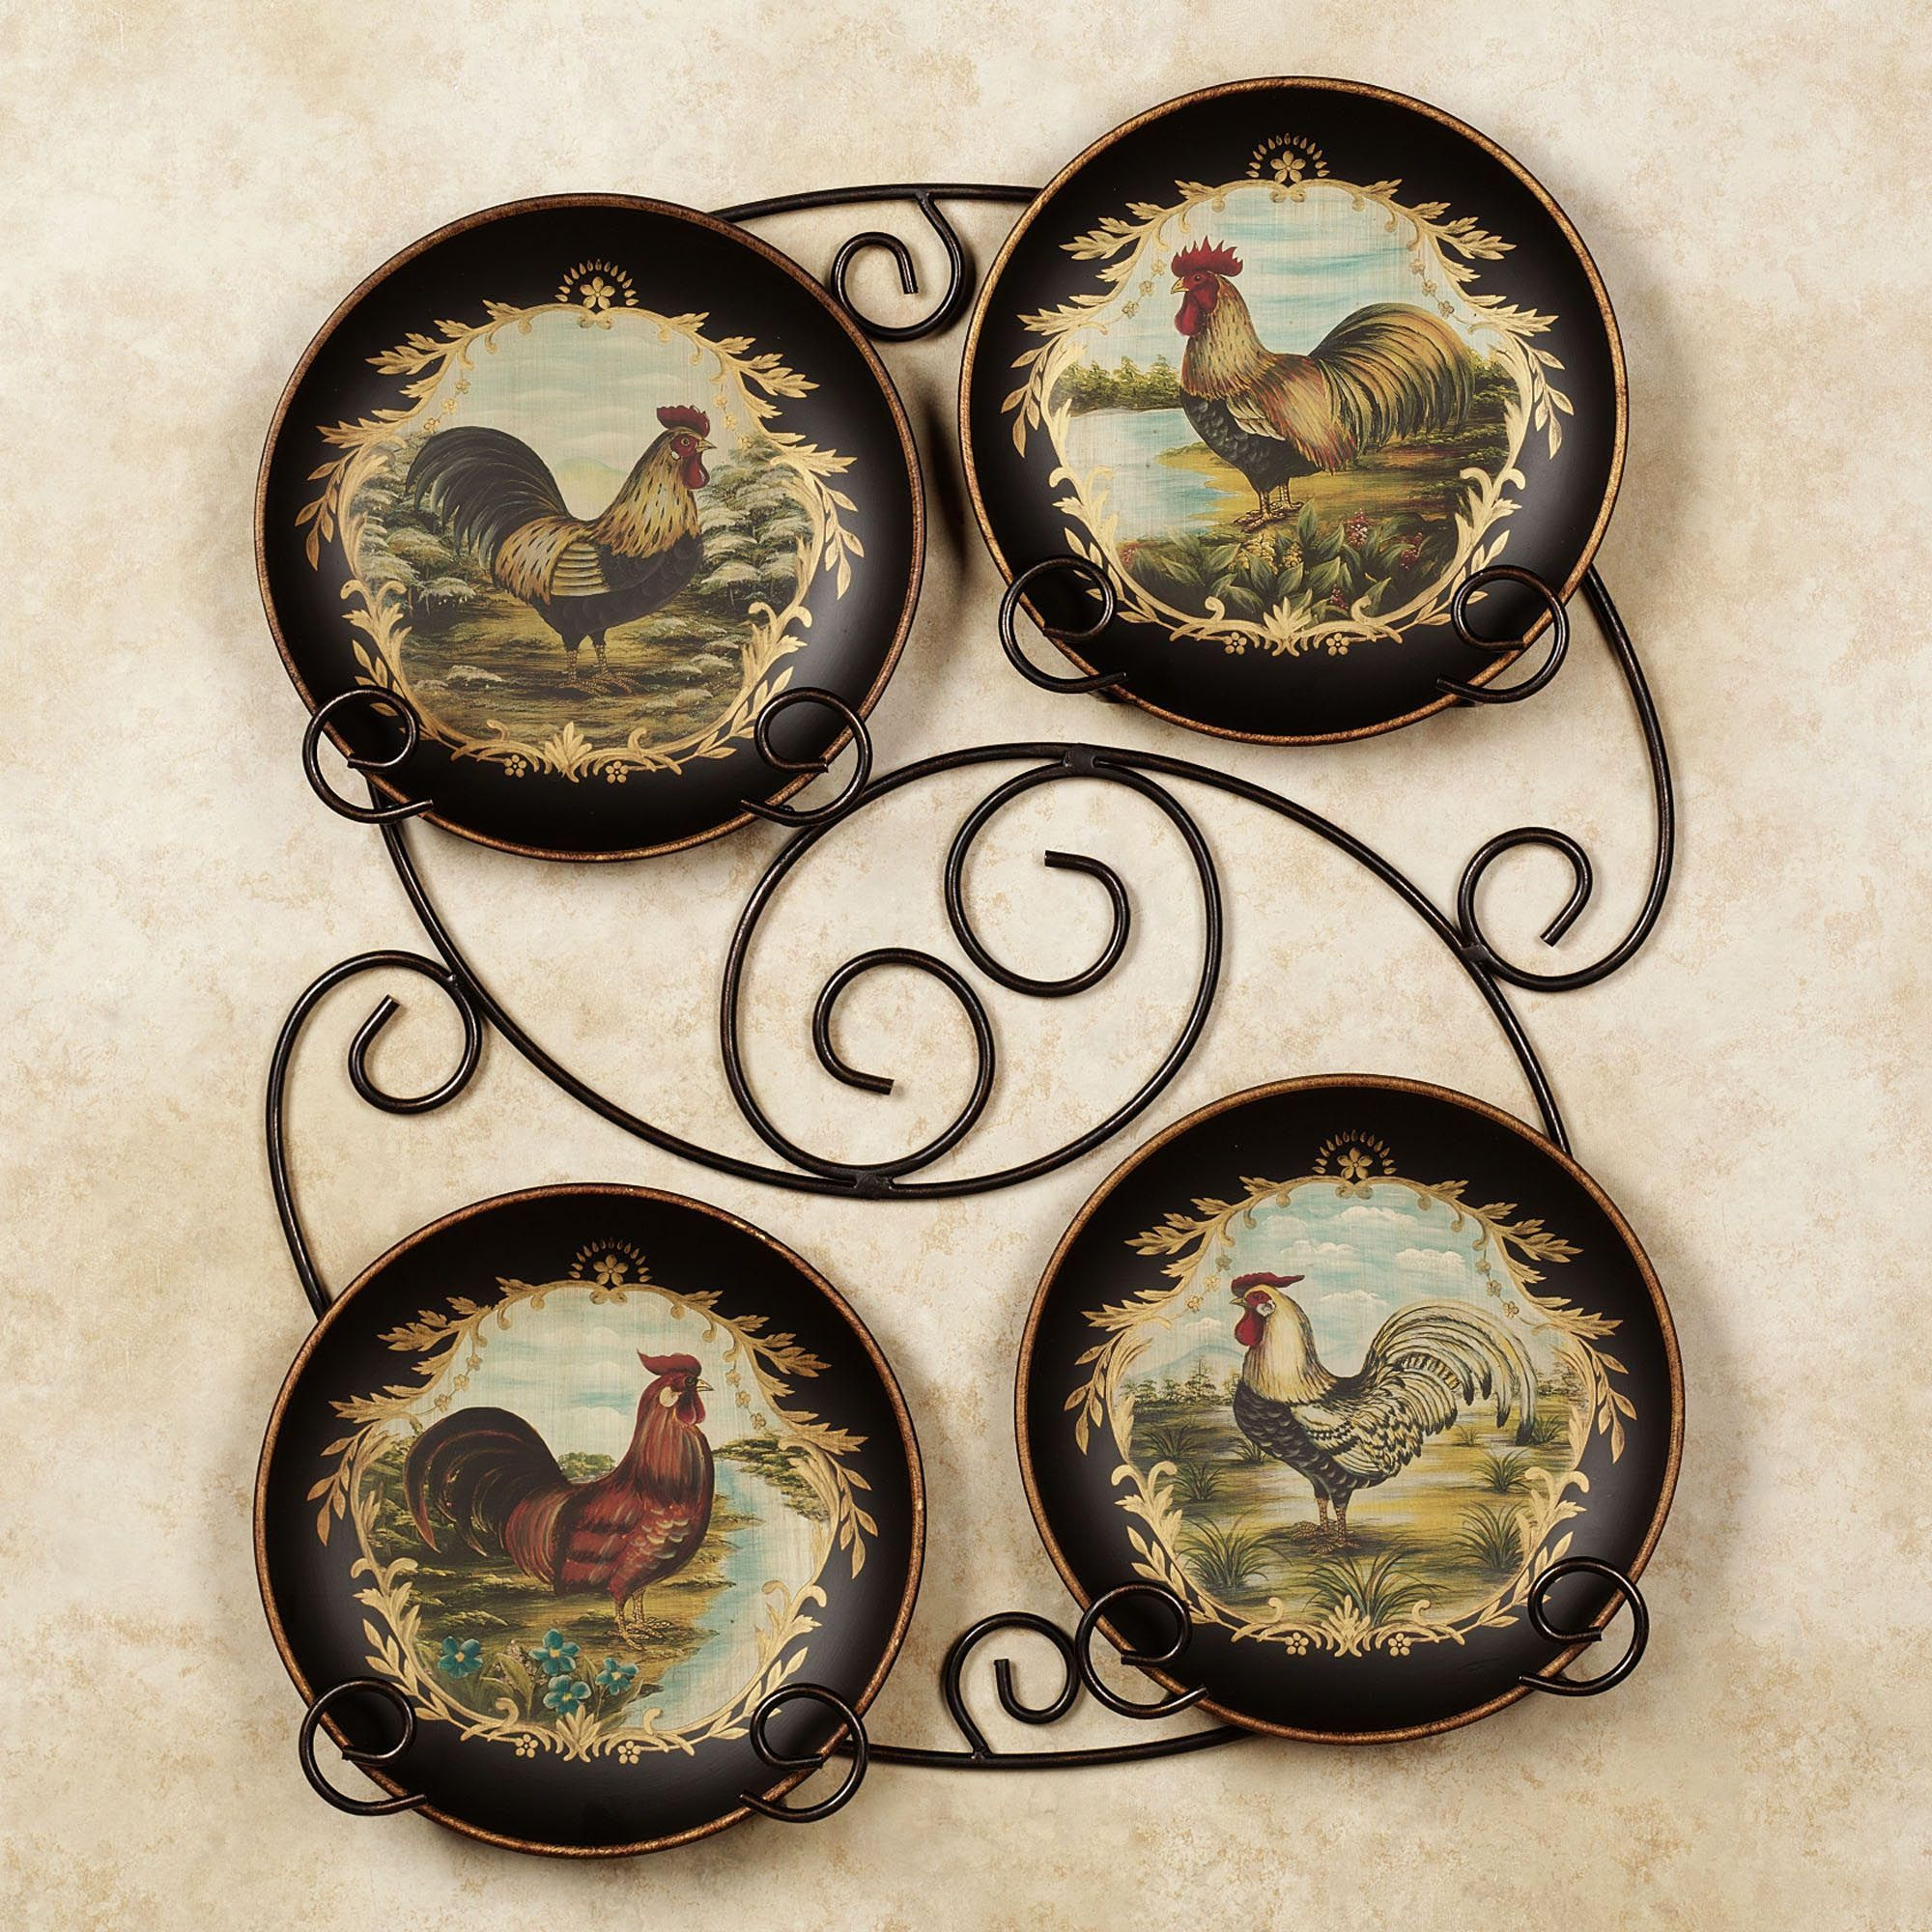 Variety of Decorative Plates for Wall  Wall Hangers For Decorative Plates. Wall hangers for decorative plates. & Wall Hangers for Decorative Plates | Decorative Plates | Pinterest ...